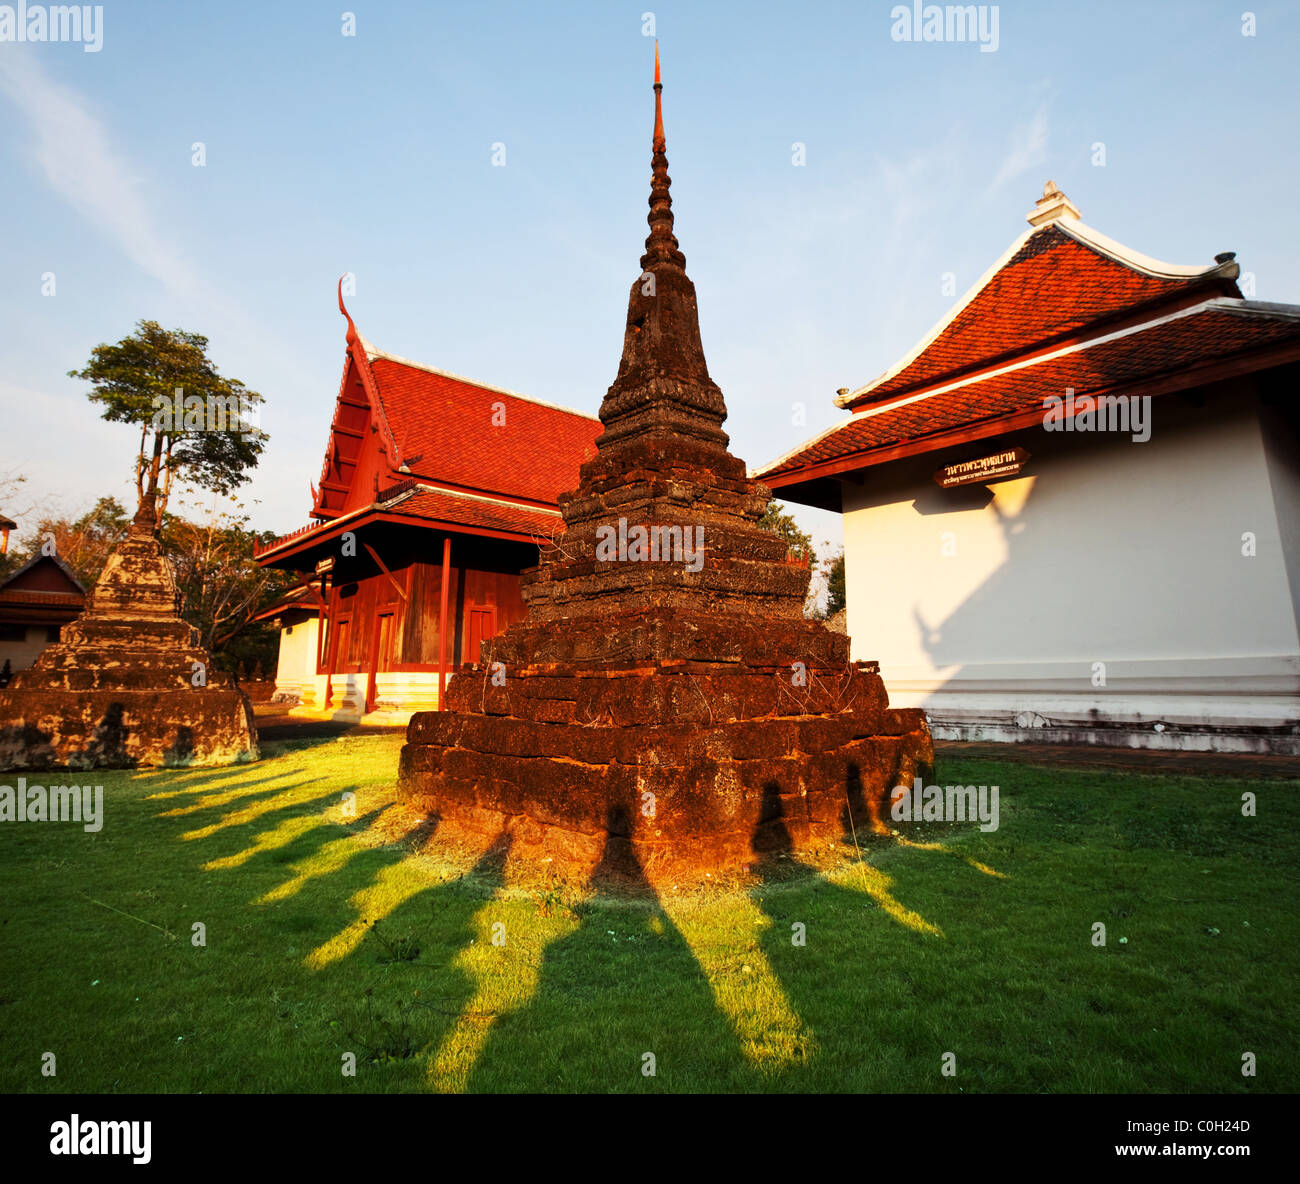 Temple in Trat, Thailand - Stock Image